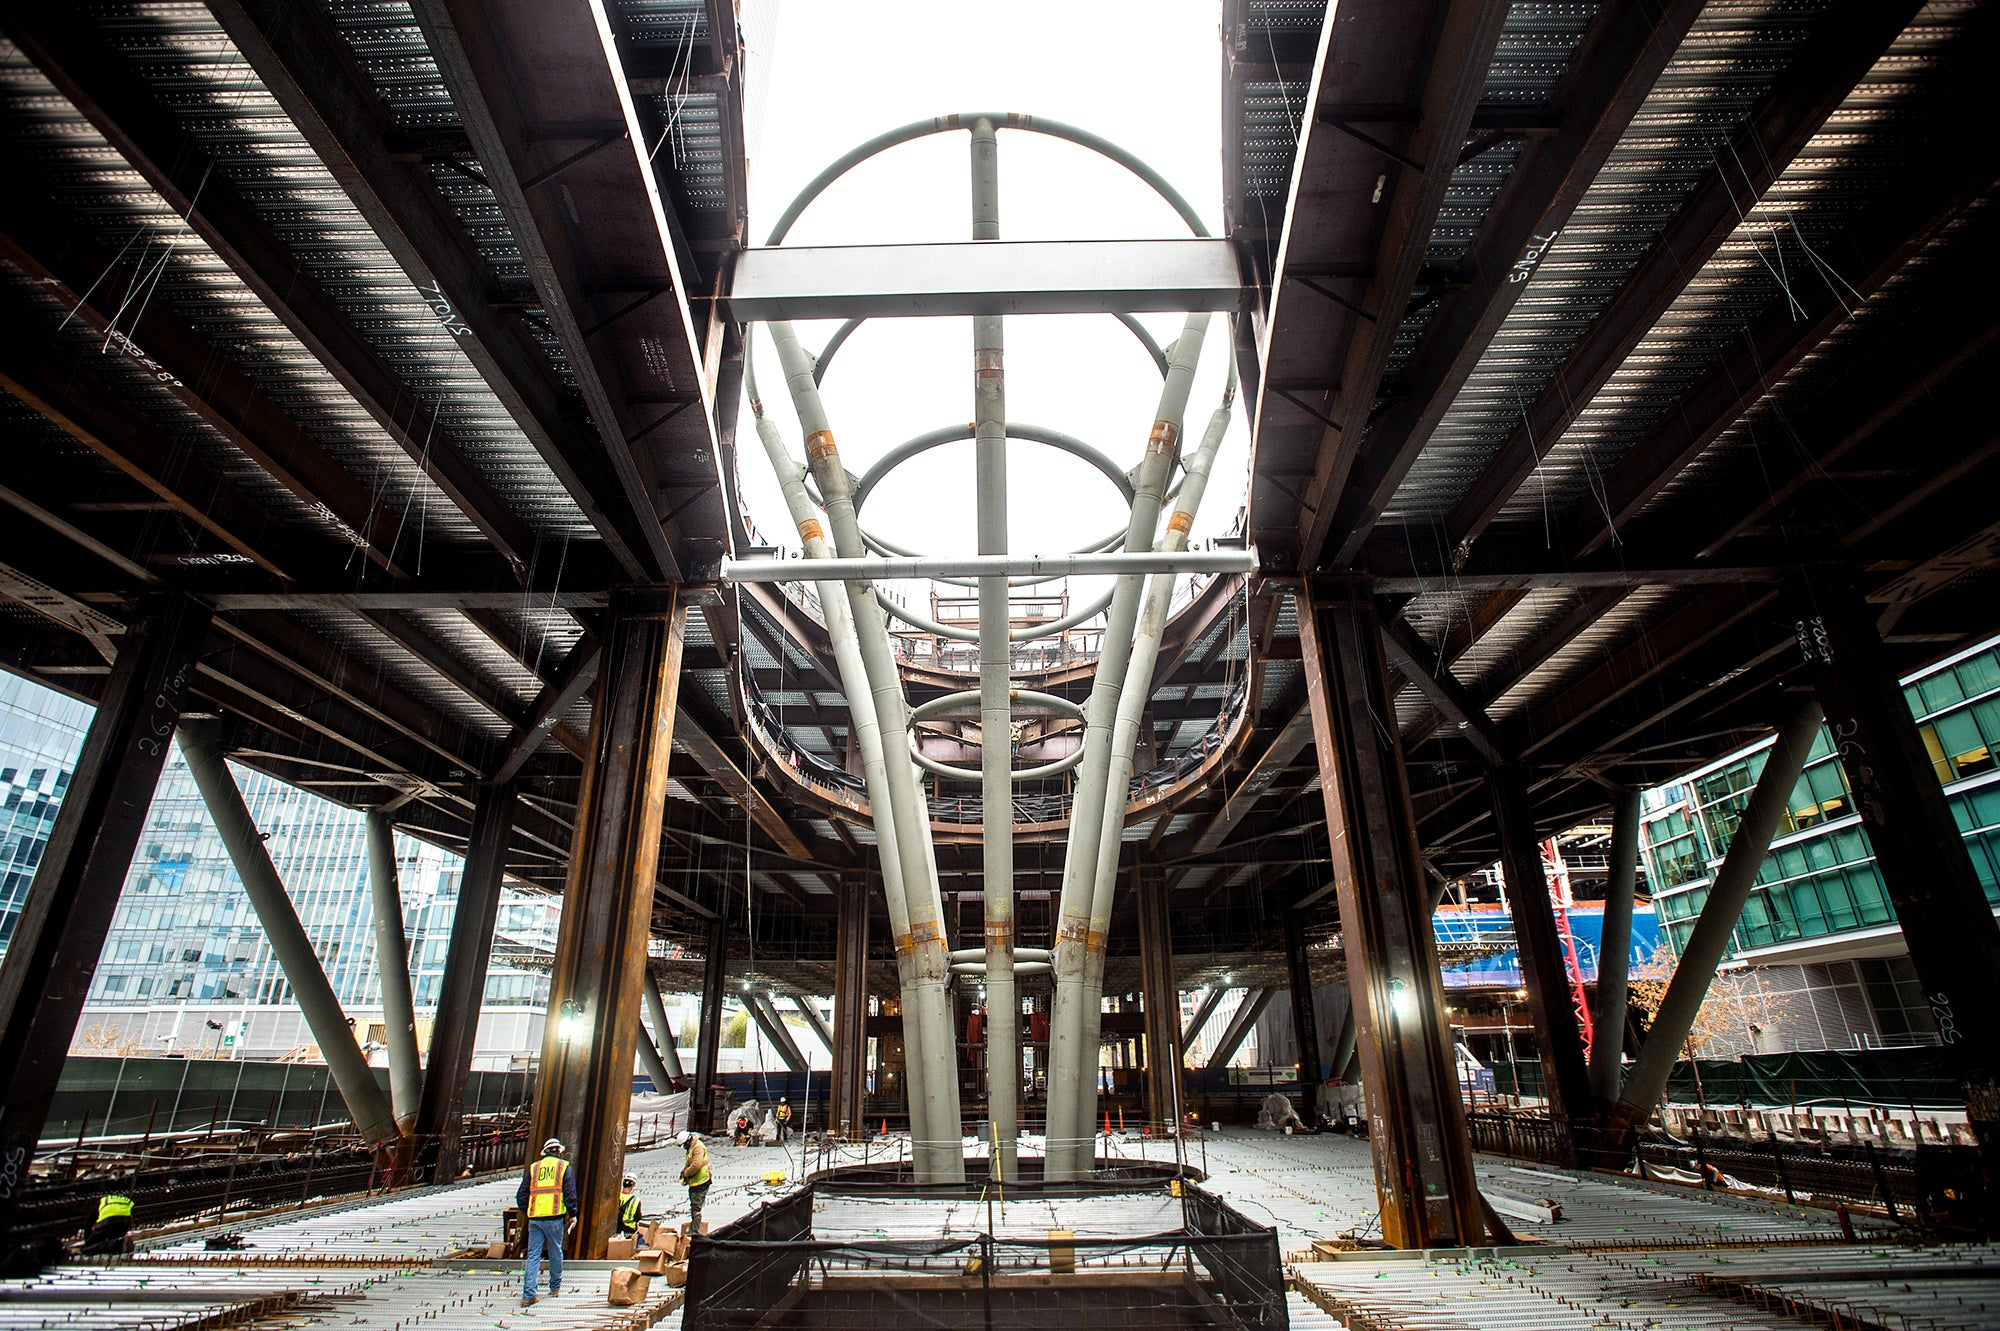 The Light Column, a central feature of the Transbay Terminal